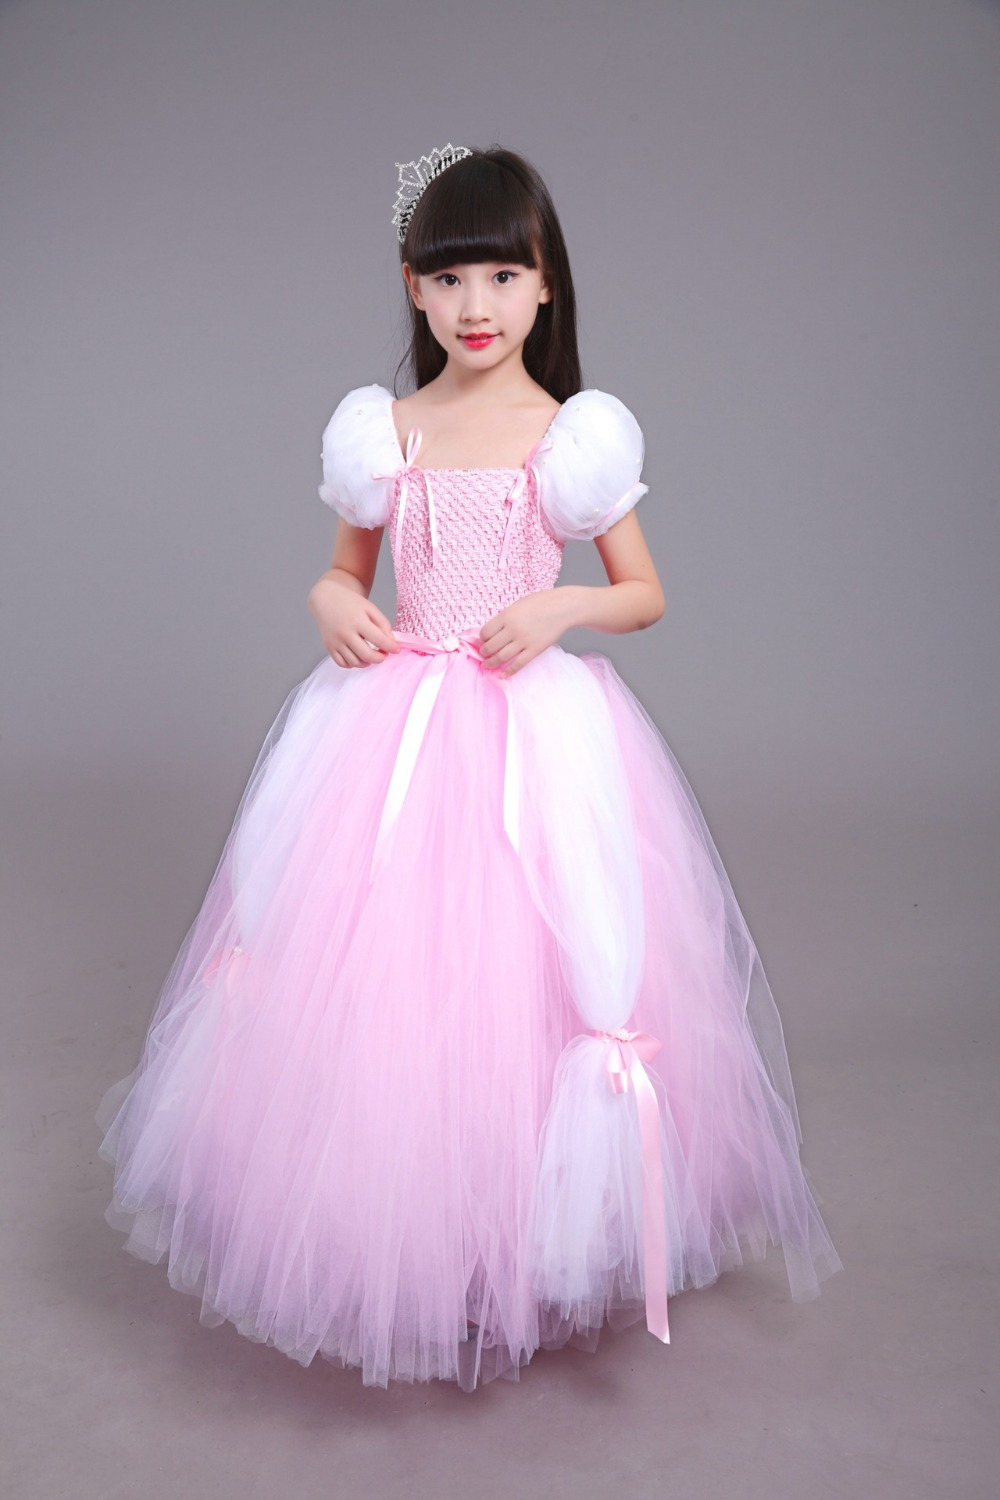 Performance Ball Gown Dress Kids Girl Latin Dance Wedding Ballet Children Party Christmas Birthday Gift Clothes Toddlers infant candino classic c4491 5 page 2